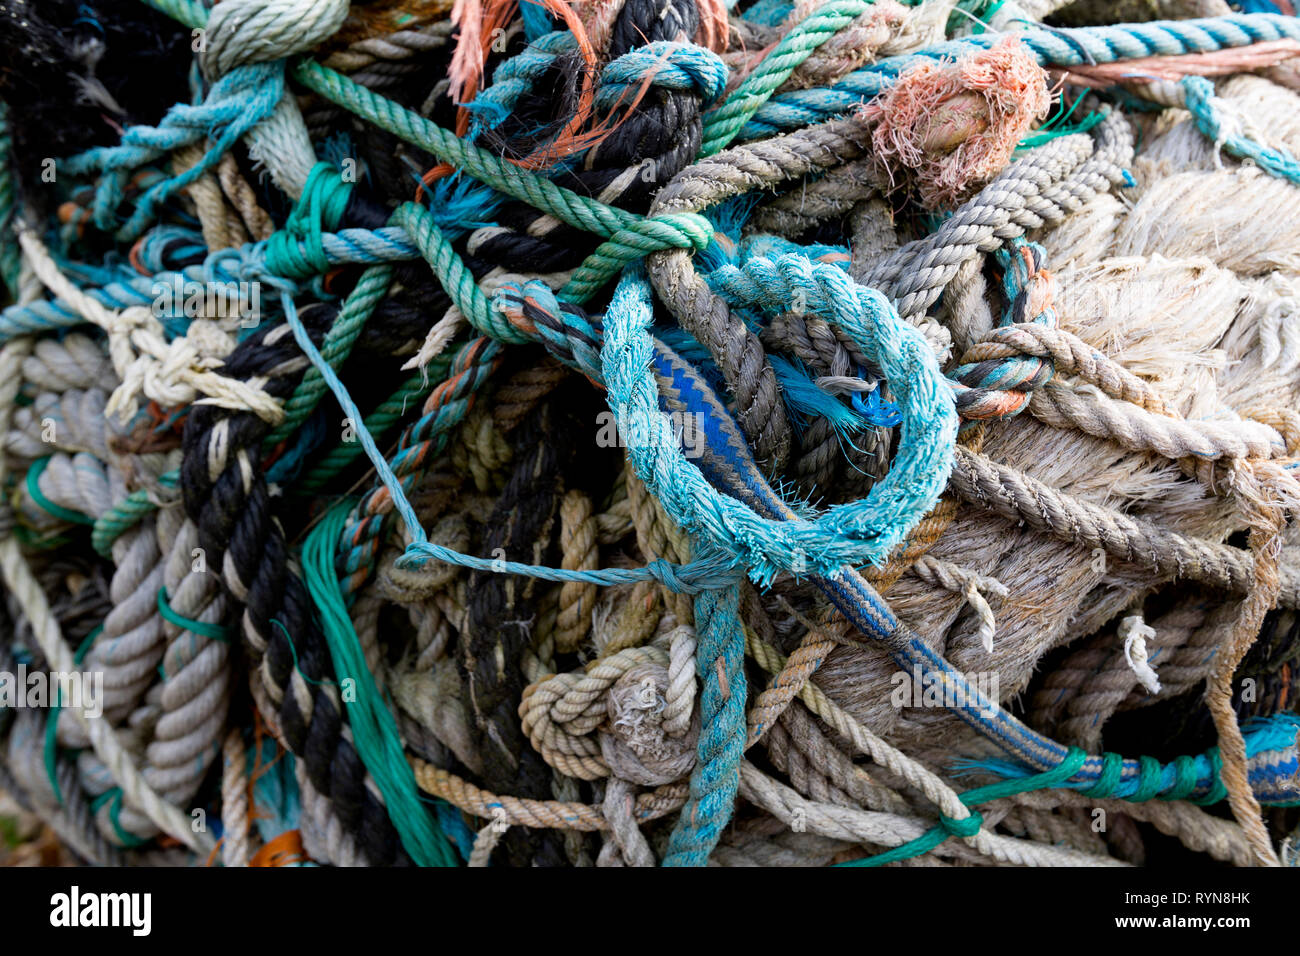 large,ball,of,rope,discarded,in,the,sea,washed,up,various,diameters,fishing warps,ropes,nets, - Stock Image